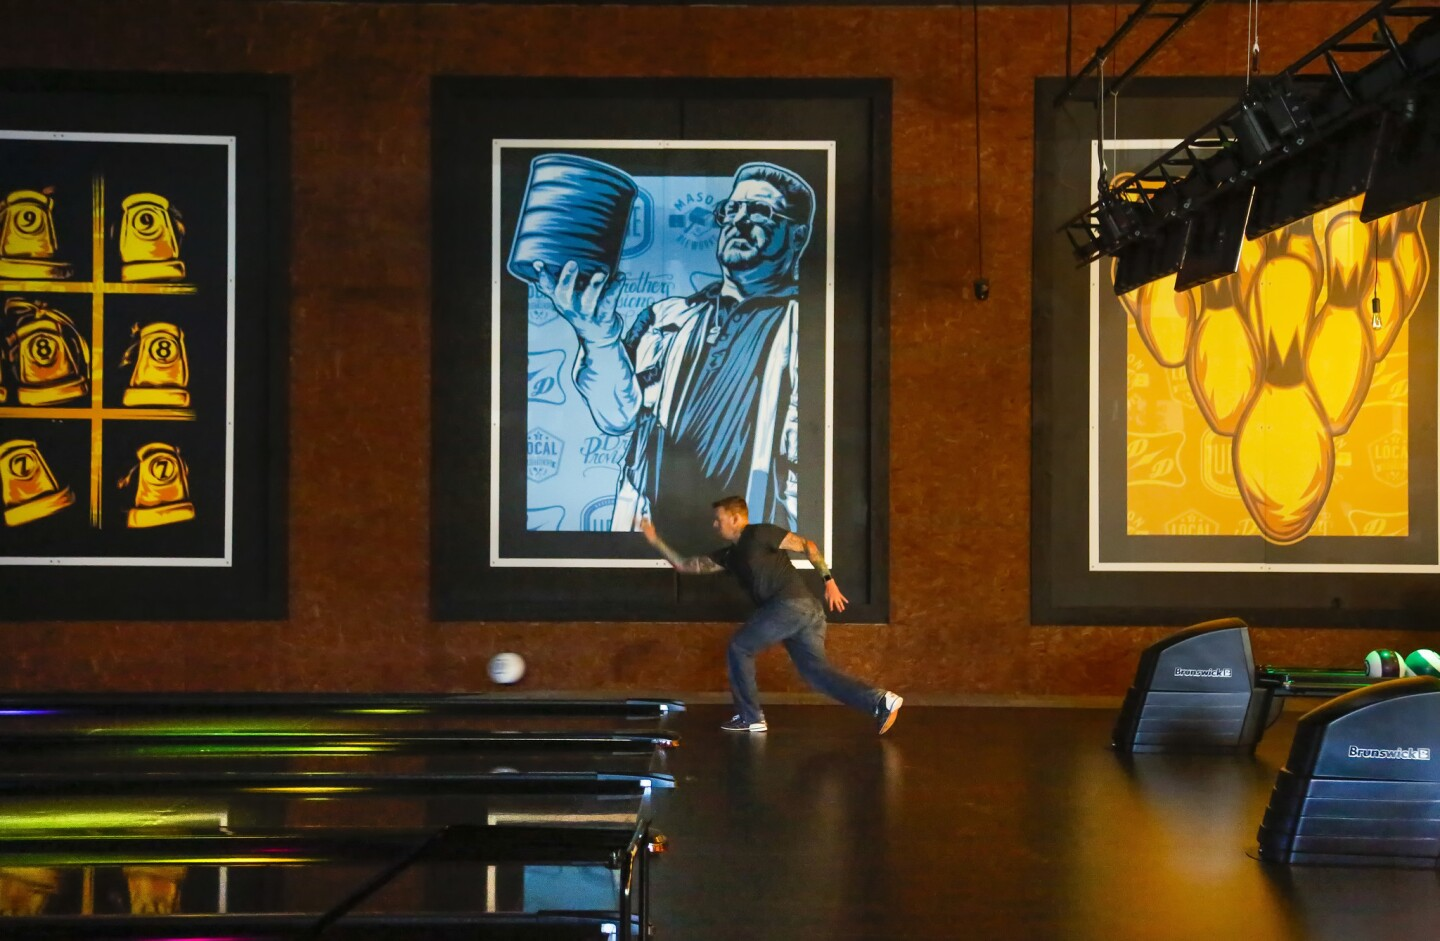 SAN MARCOS, CA: April 12, 2017 | Dan Cooper bowls at the 8-lane bowling alley inside the new Urge Gastropub and Common House near Cal State University San Marcos that features 21,000-square-feet of space which houses a Mason Ale Works brewery, restaurant, three bars and a large patio with bocce ball courts, and oversize table games. | Photo by Howard Lipin/San Diego Union-Tribune/Mandatory Credit: HOWARD LIPIN SAN DIEGO UNION-TRIBUNE/ZUMA PRESS